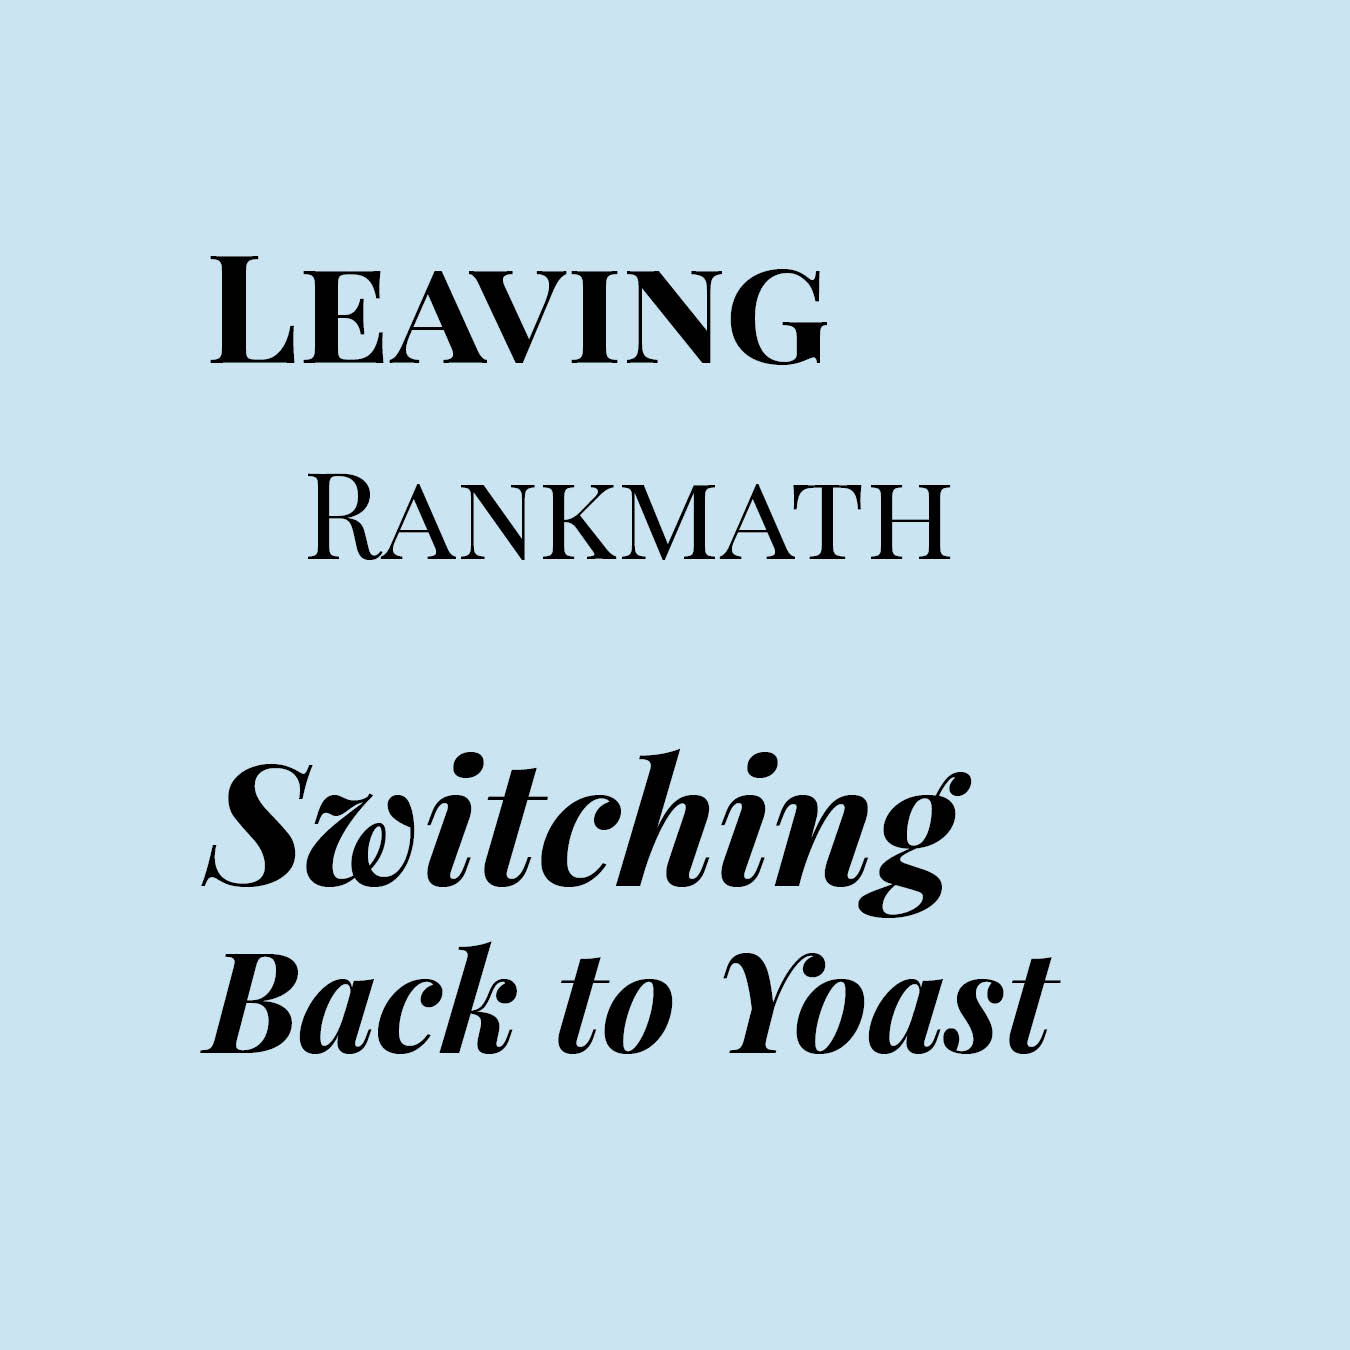 Leaving Rankmath to Yoast